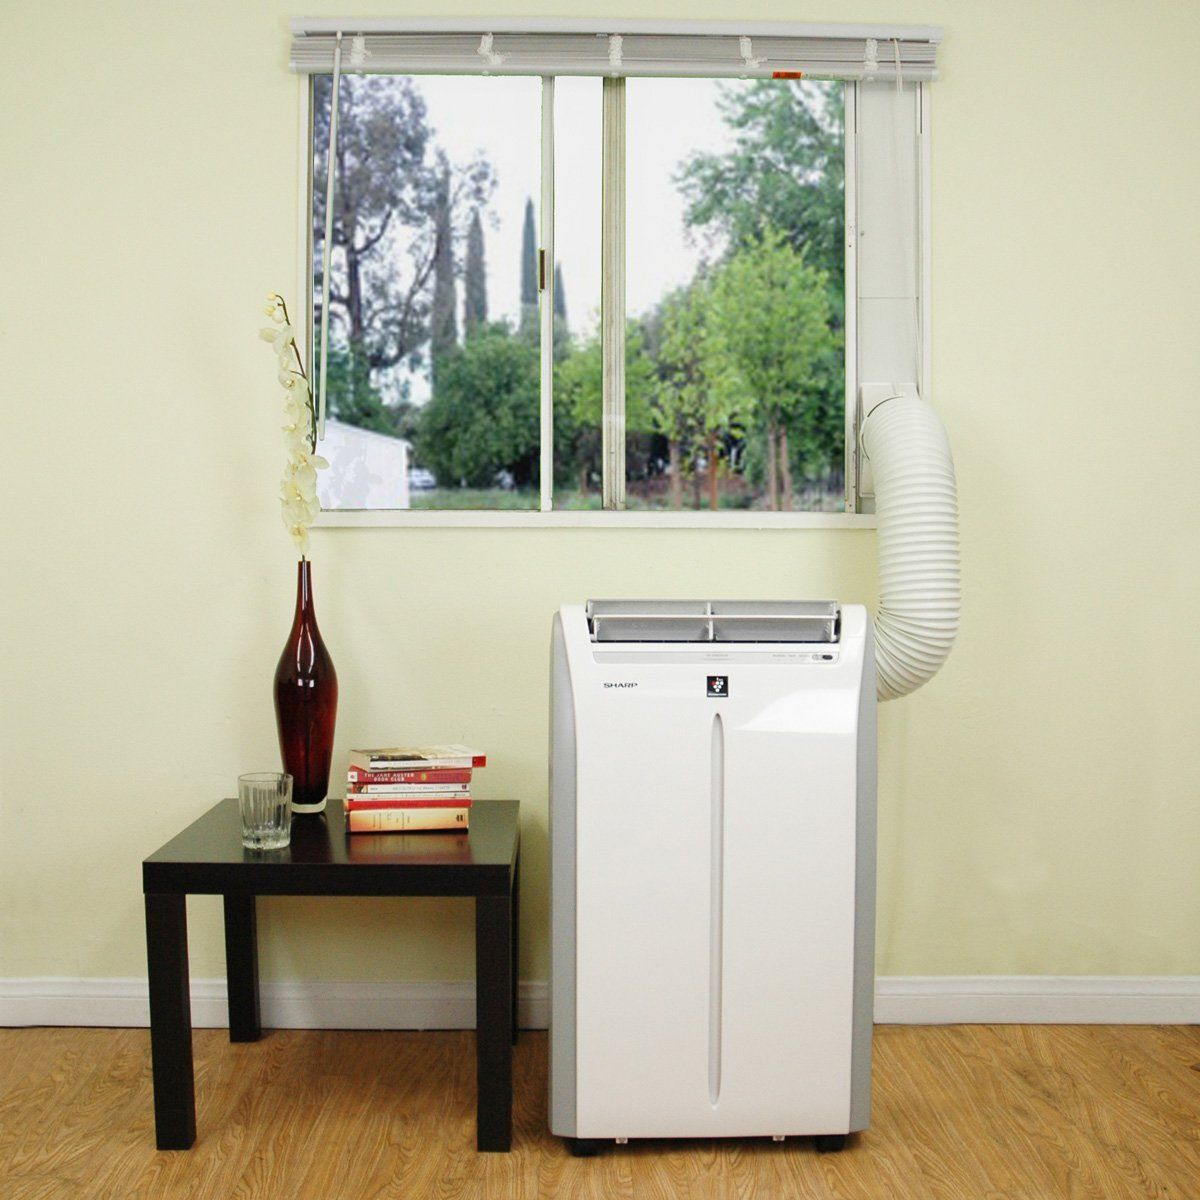 Vertical Window Air Conditioner Canada Portable Air Conditioner With Sliding Glass Door Kits Small